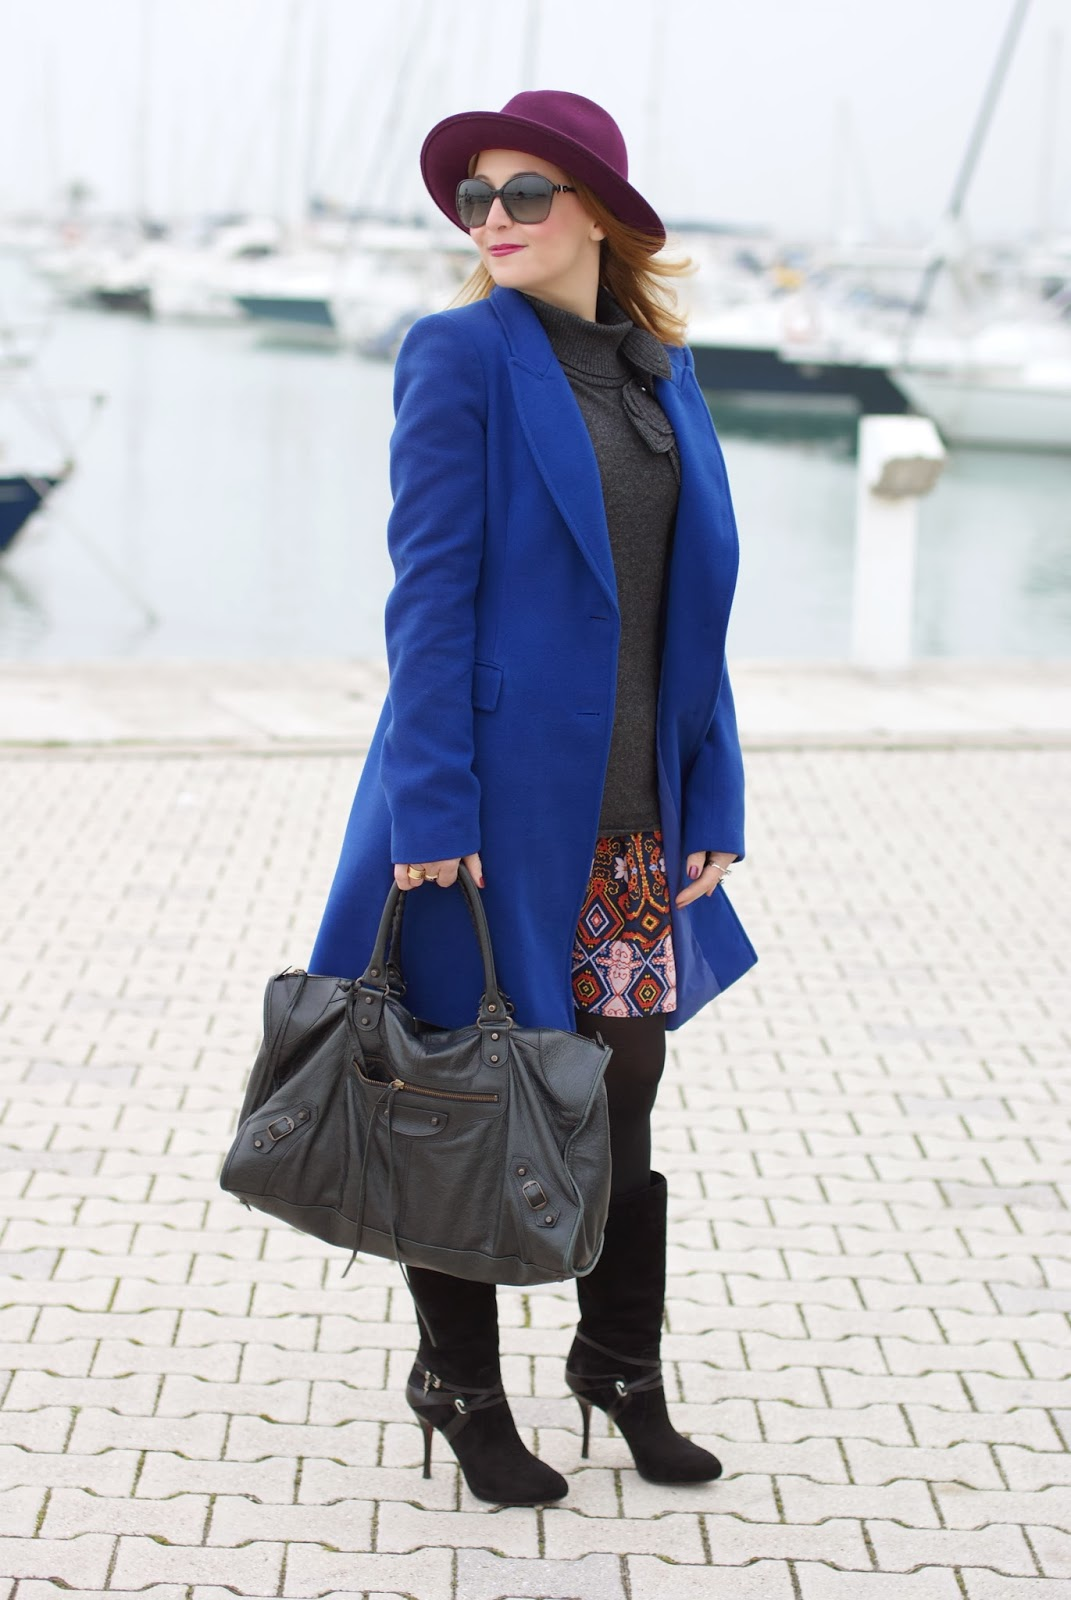 Paola Frani cappotto, cobalt blue coat, Naf Naf miniskirt, Balenciaga work bag, Cesare Paciotti boots, Fashion and Cookies, fashion blogger